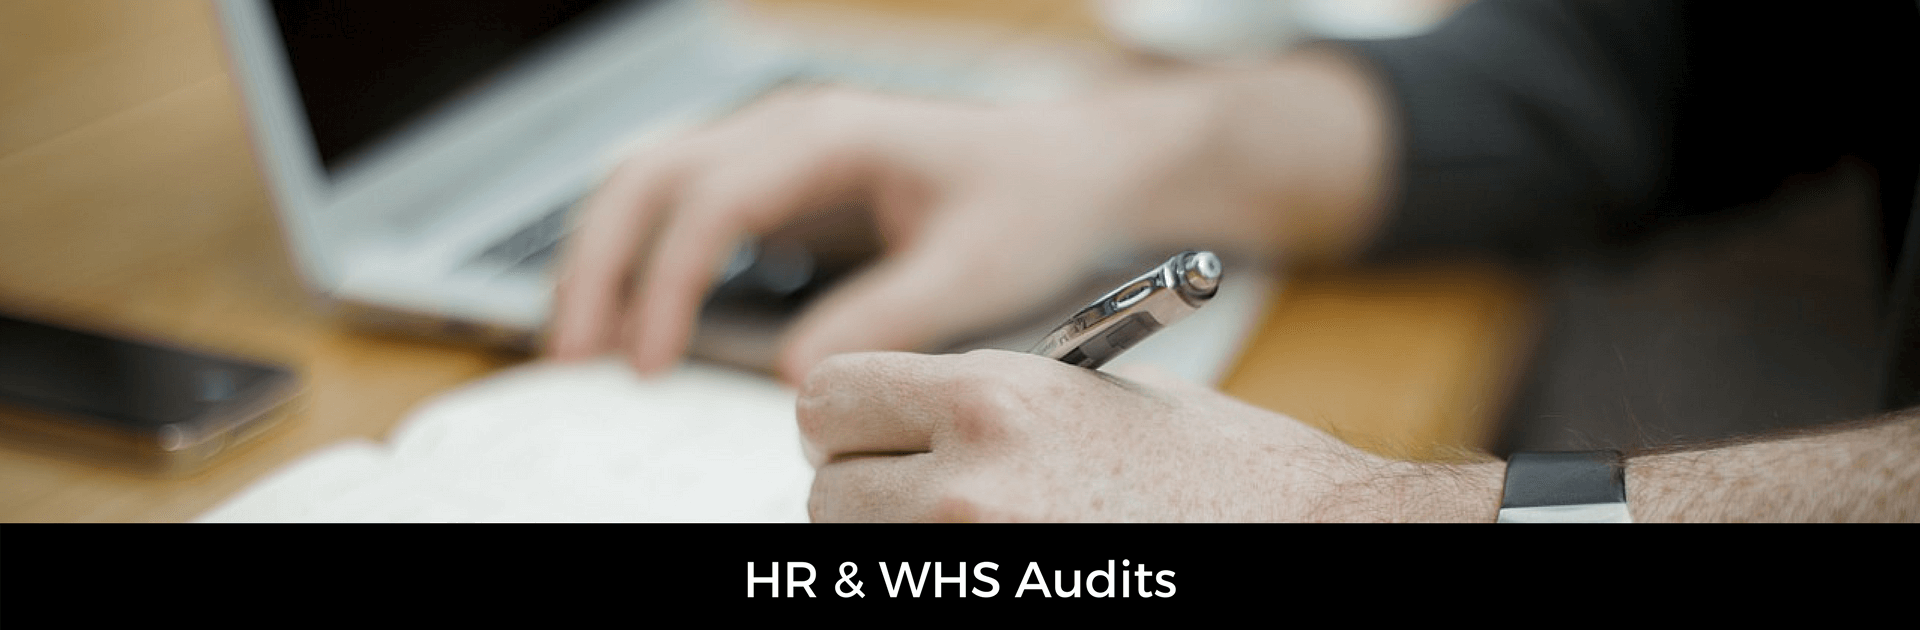 Image with caption HR & WHS audits. Background image of a person reviewing a document with a laptop in background.